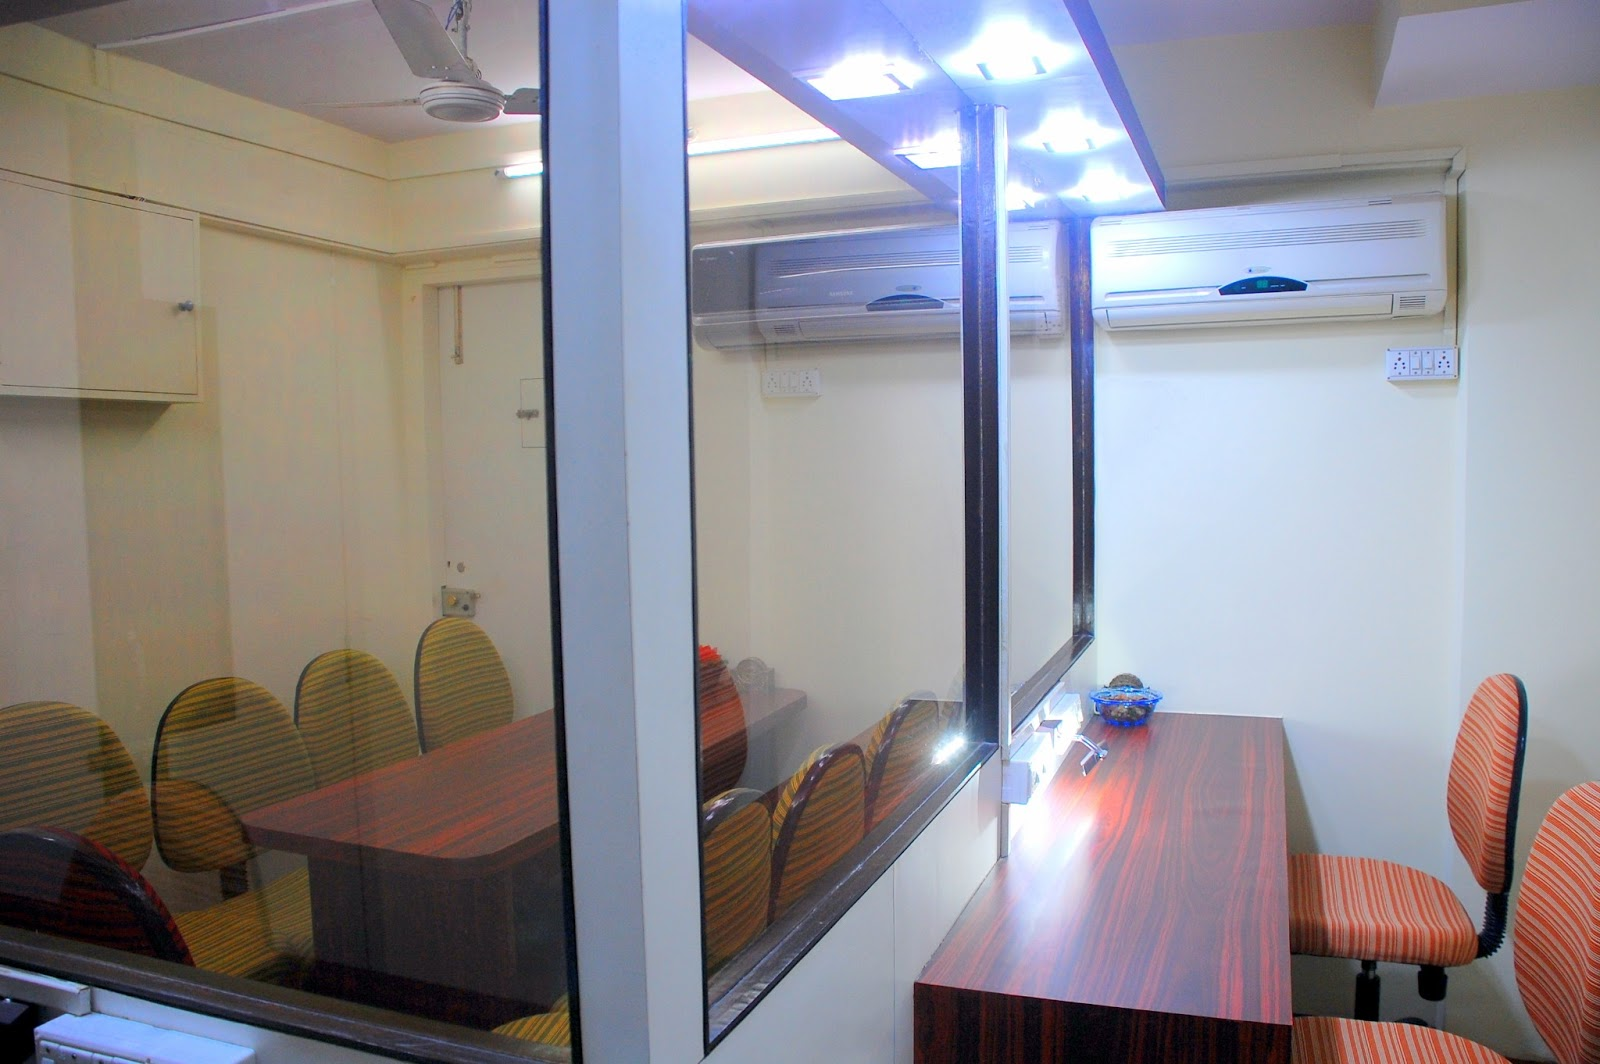 one way mirror viewing facility mumbai india 1lotus research. Black Bedroom Furniture Sets. Home Design Ideas